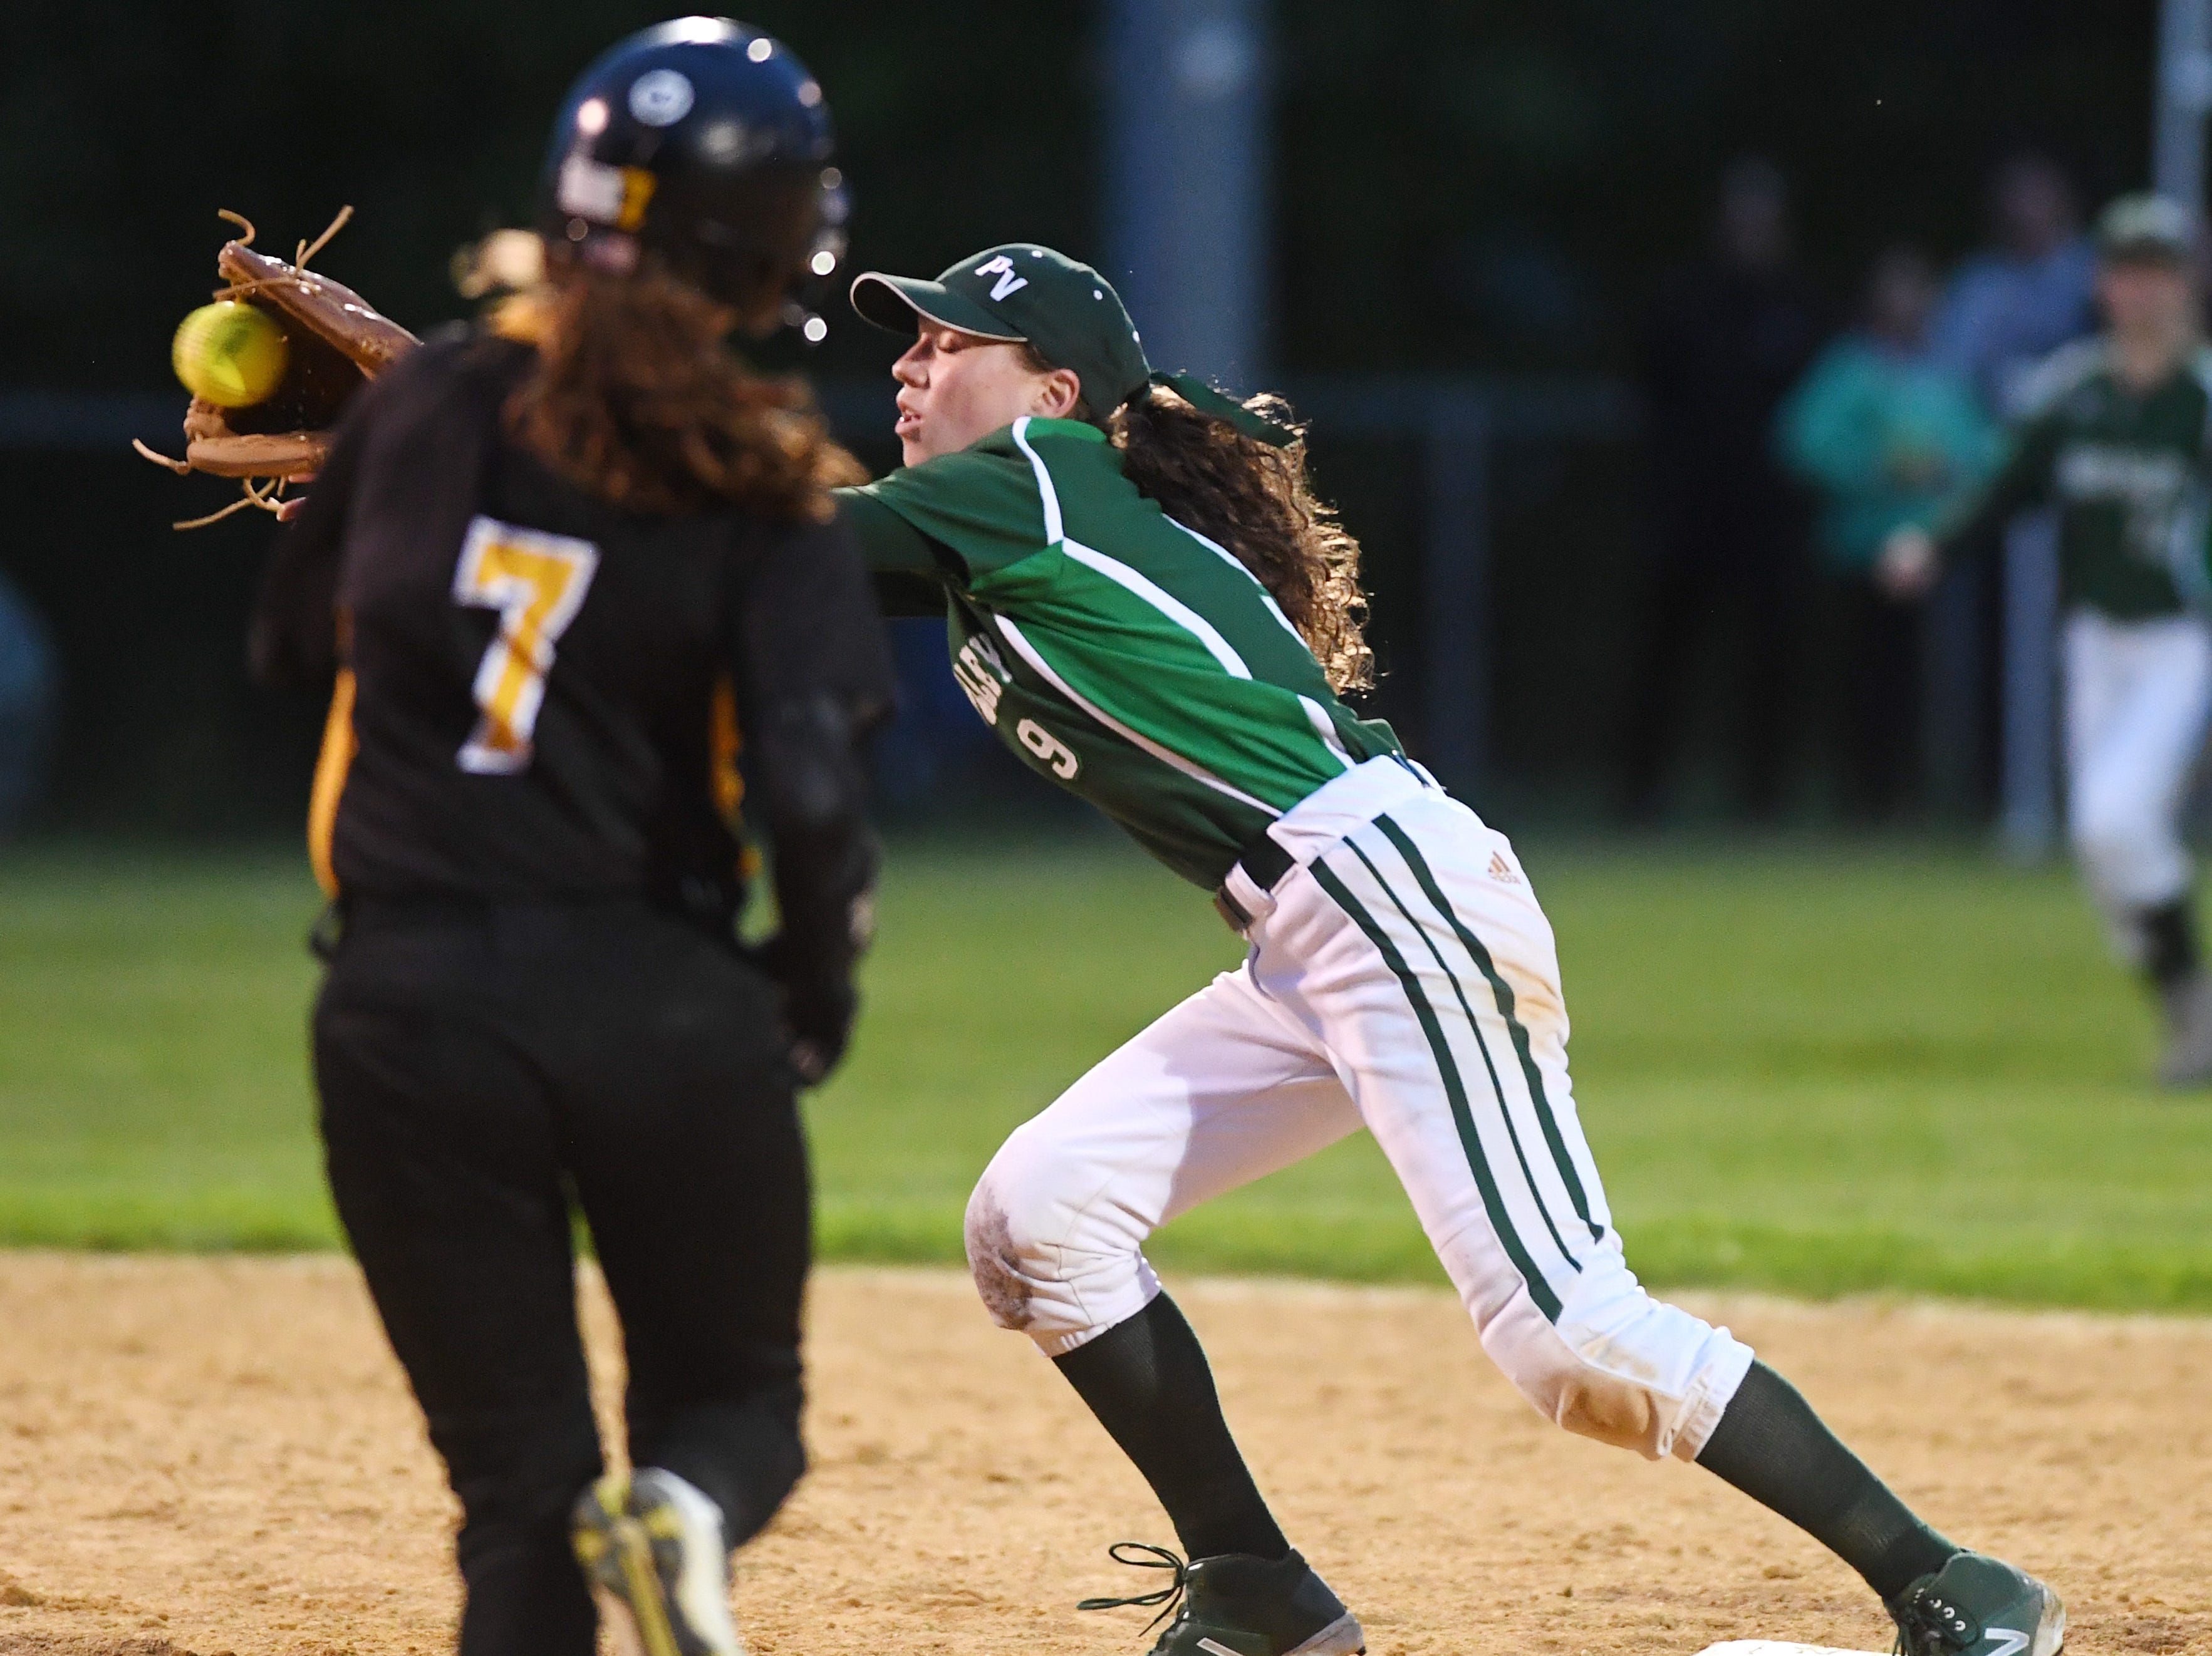 West Milford vs. Passaic Valley in the Passaic County Softball Tournament semifinals in West Milford on Thursday, May 9, 2019. PV #9 Taylor Hill gets the out at second.